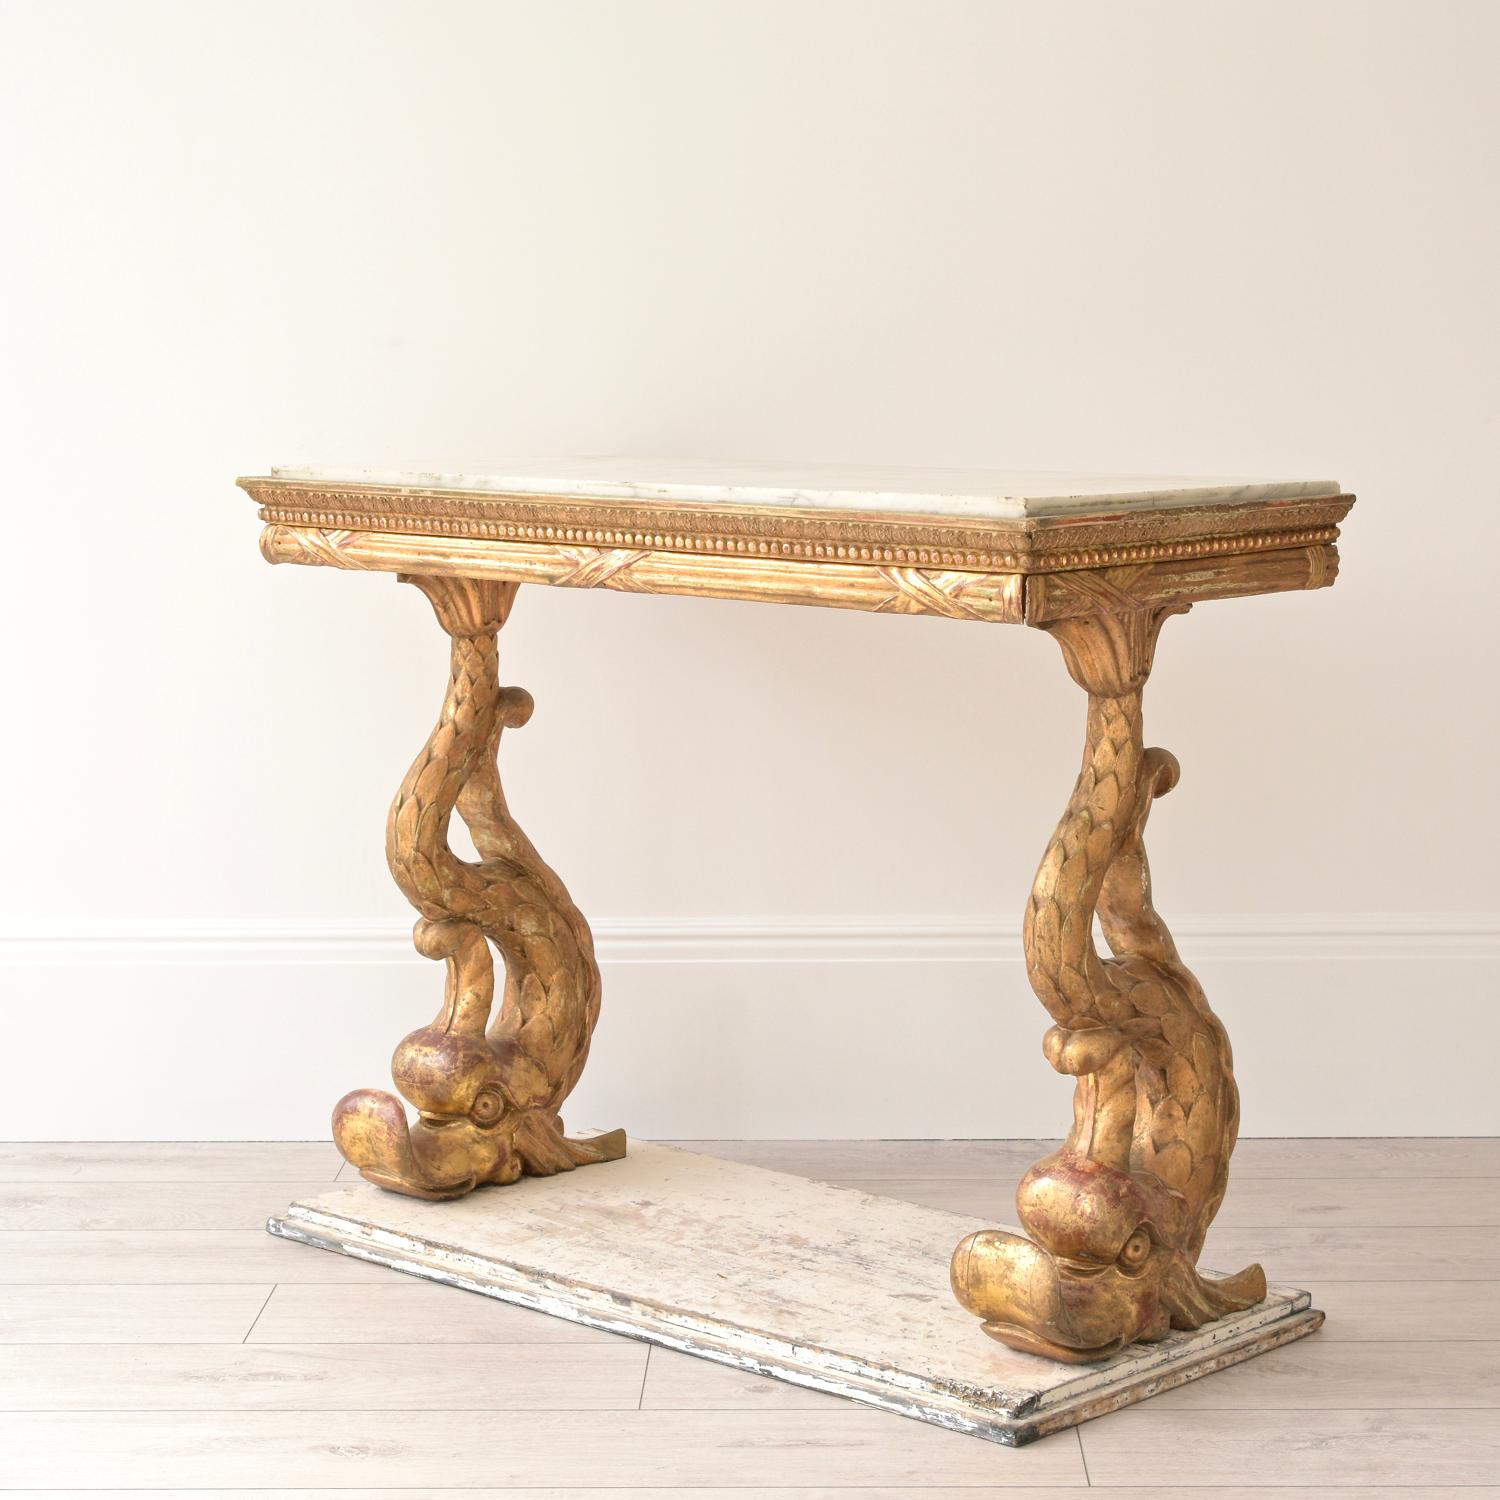 LATE GUSTAVIAN PERIOD SWEDISH EMPIRE CONSOLE TABLE